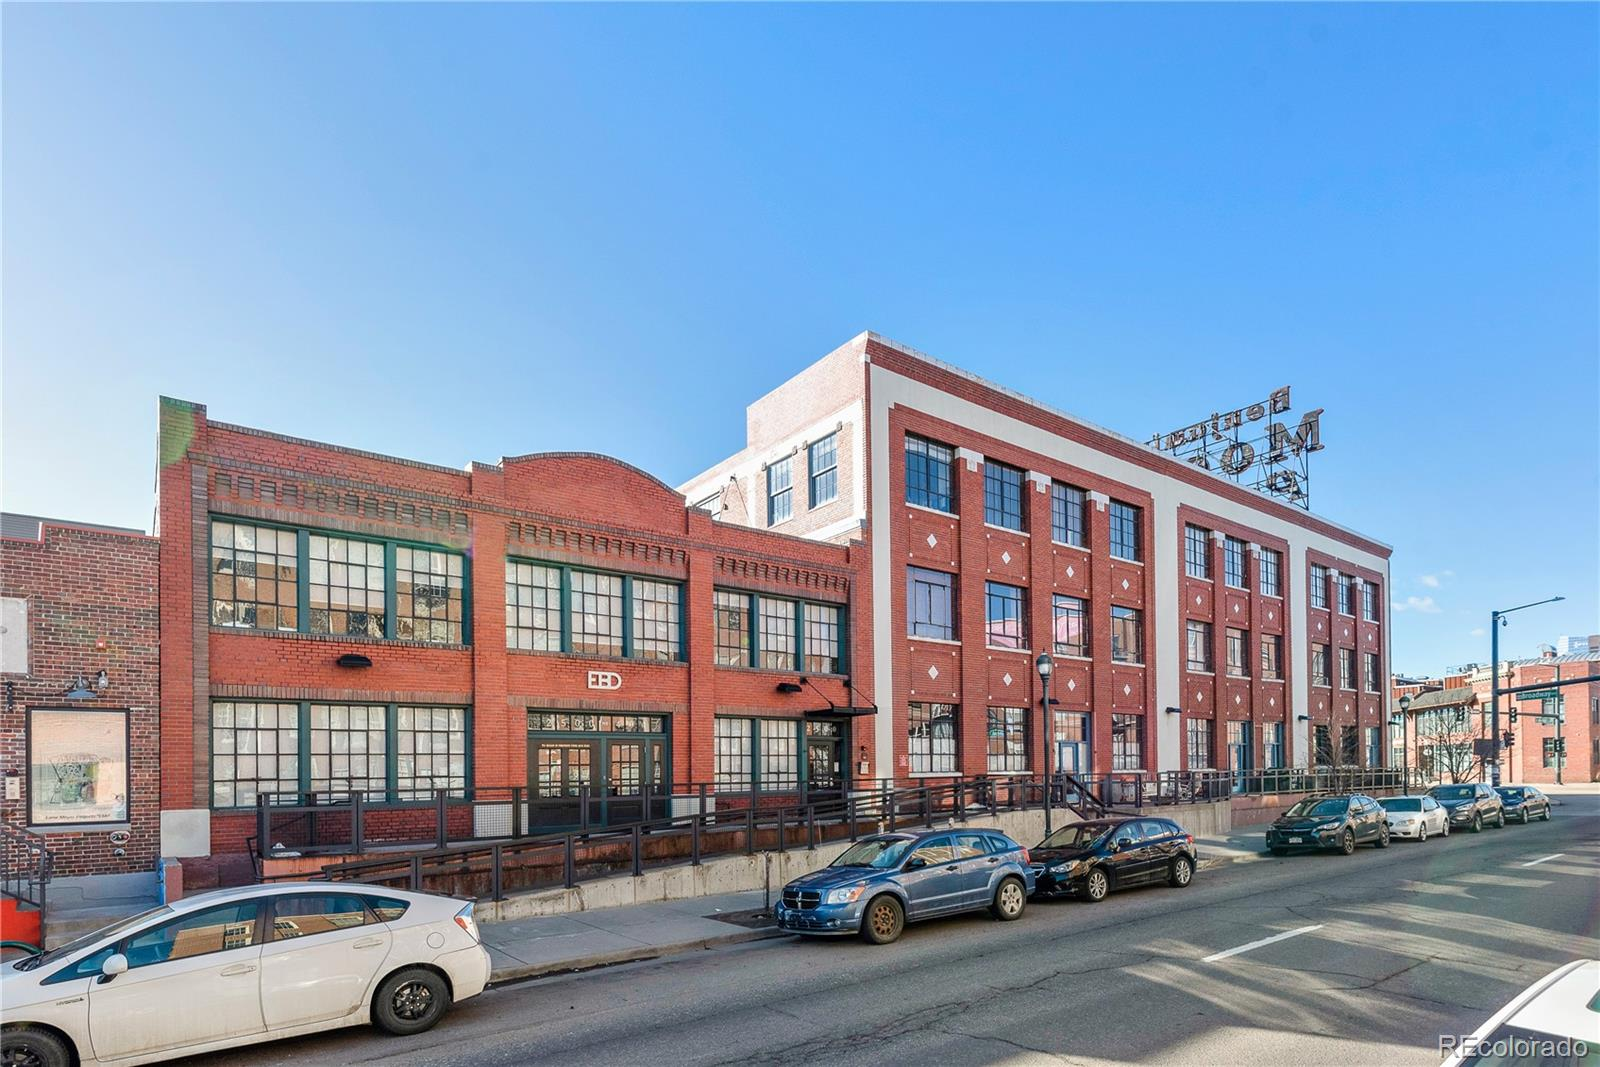 Are you looking for a historic brick loft full of character and light? How about secured parking with a reserved, covered space in River North (RiNo) - one of Denver's hottest neighborhoods? Wouldn't it be nice to have space not just for friends but two huge storage lockers for bikes, outdoor gear, and retro ski outfits too?! This isn't La-La Land, it's Unit 206 in the Historic Benjamin Moore Paint Building. Long home to a bustling facility symbolic of America's industrial might, Denver's sudden conversion from cow-town to thriving urban center, brought with it an iconic rebirth of the historic building. Purchased with the intent of creating a small collection of modern industrial lofts, the extensive rehabilitation produced superb results. The 2500 Walnut Lofts brilliantly balance the building's brick, concrete, and steel character with coveted elements of modern luxury - tall ceilings, huge windows, open designs, walk-in closets, and city views. After the rehab, the Sellers were one of the first in line and selected a northwest facing unit on the 2nd floor to ensure afternoon and evening light, a beautiful view of the brick clocktower across the street, and the peace and privacy that comes with being above the fray. They also added their own special touch - like a 2nd bathroom, a rarity in the building. Their decision - shortly after moving in -  to commission a local artist to design and build a breathtaking copper door - creates another feature unto itself. With it, the expansive living room can instantly transform into a guest bedroom, master suite, or mixed-use space. It's truly a sanctuary in the heart of the city. And should you tire of quiet solitude, and yearn for the company of friends, you'll be steps from the places you love to meet - the Denver Central Market, Osaka Ramen, First Draft Taproom, Lustre Pearl, Patagonia, Big Power Yoga, Los Chingones, and more. They say there's no such thing as perfect, but this unit just might be!